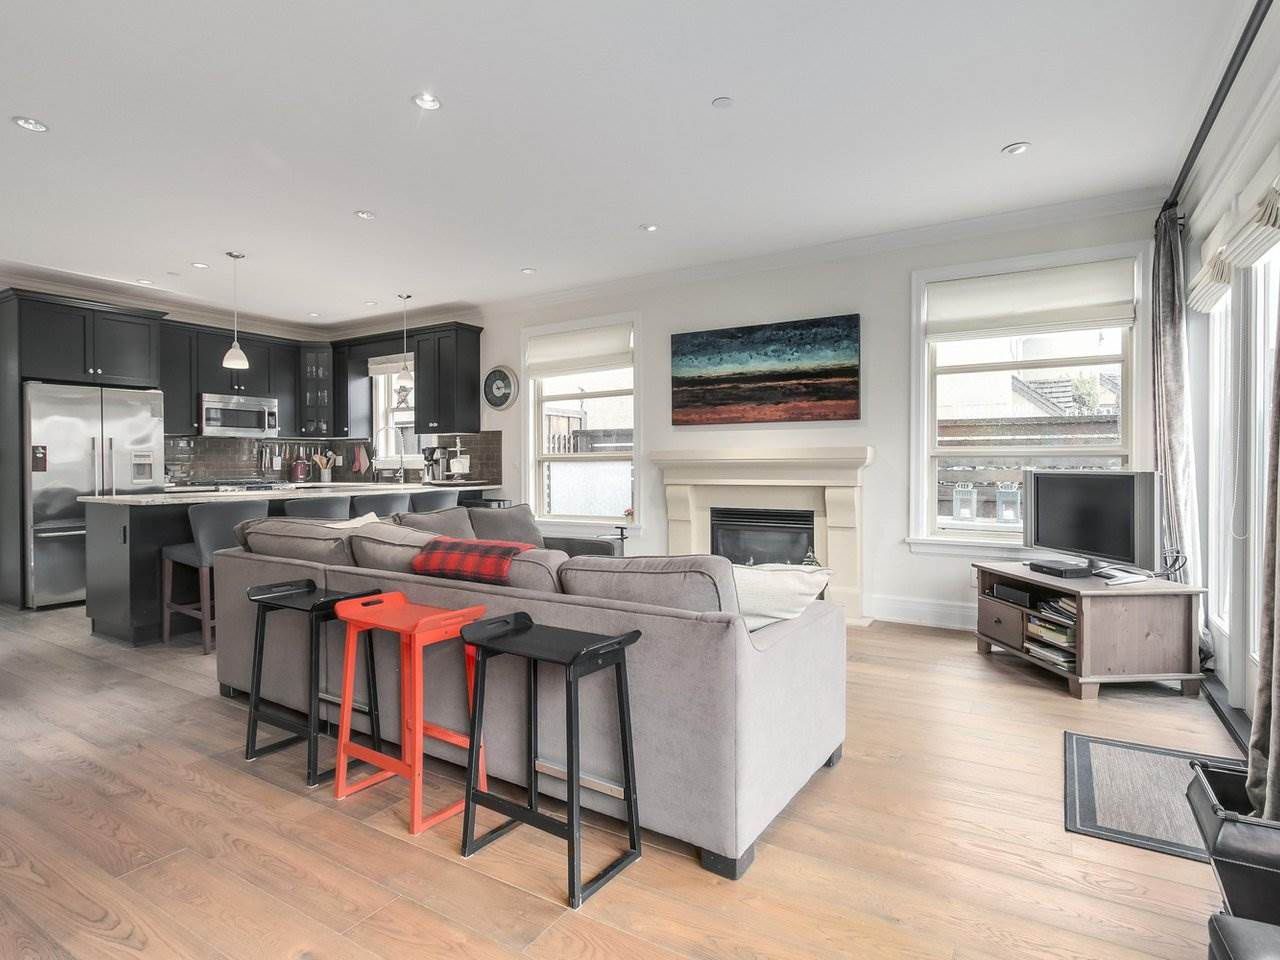 """Photo 4: Photos: 4 249 W 16TH Street in North Vancouver: Central Lonsdale House 1/2 Duplex for sale in """"THE WEST"""" : MLS®# R2262955"""